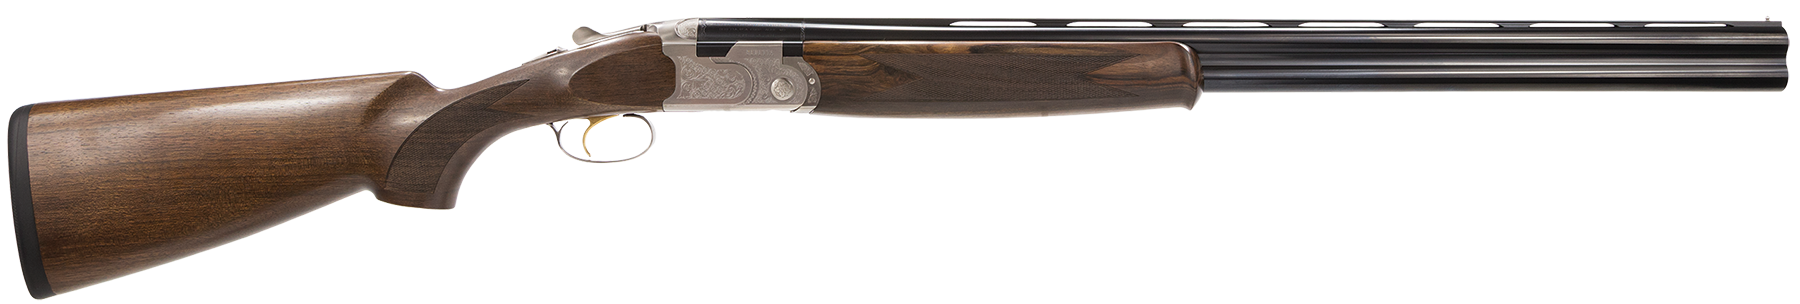 Beretta 686 Silver Pigeon I Over/Under Shotgun 3'' 12 Gauge 26'' Silver Engraved - Walnut